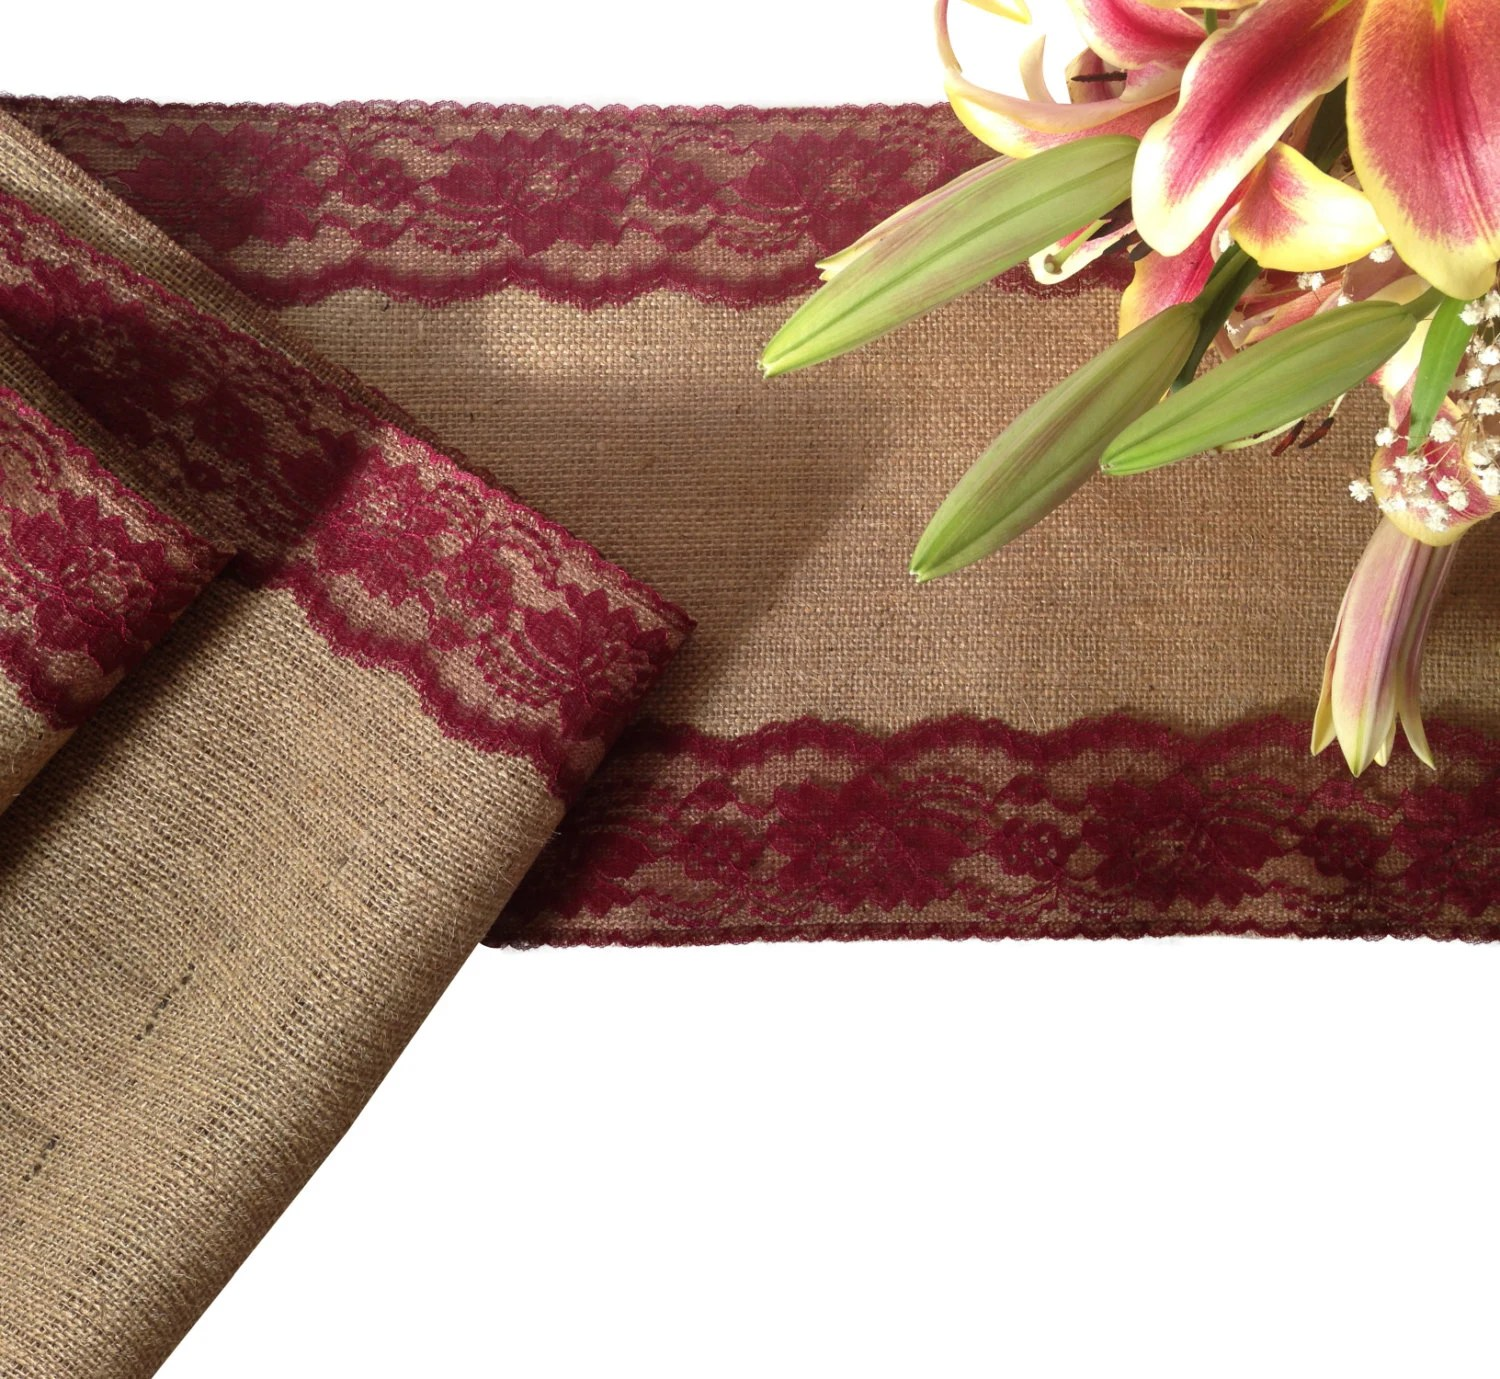 Burlap And BURGUNDY RED Lace Table Runner By